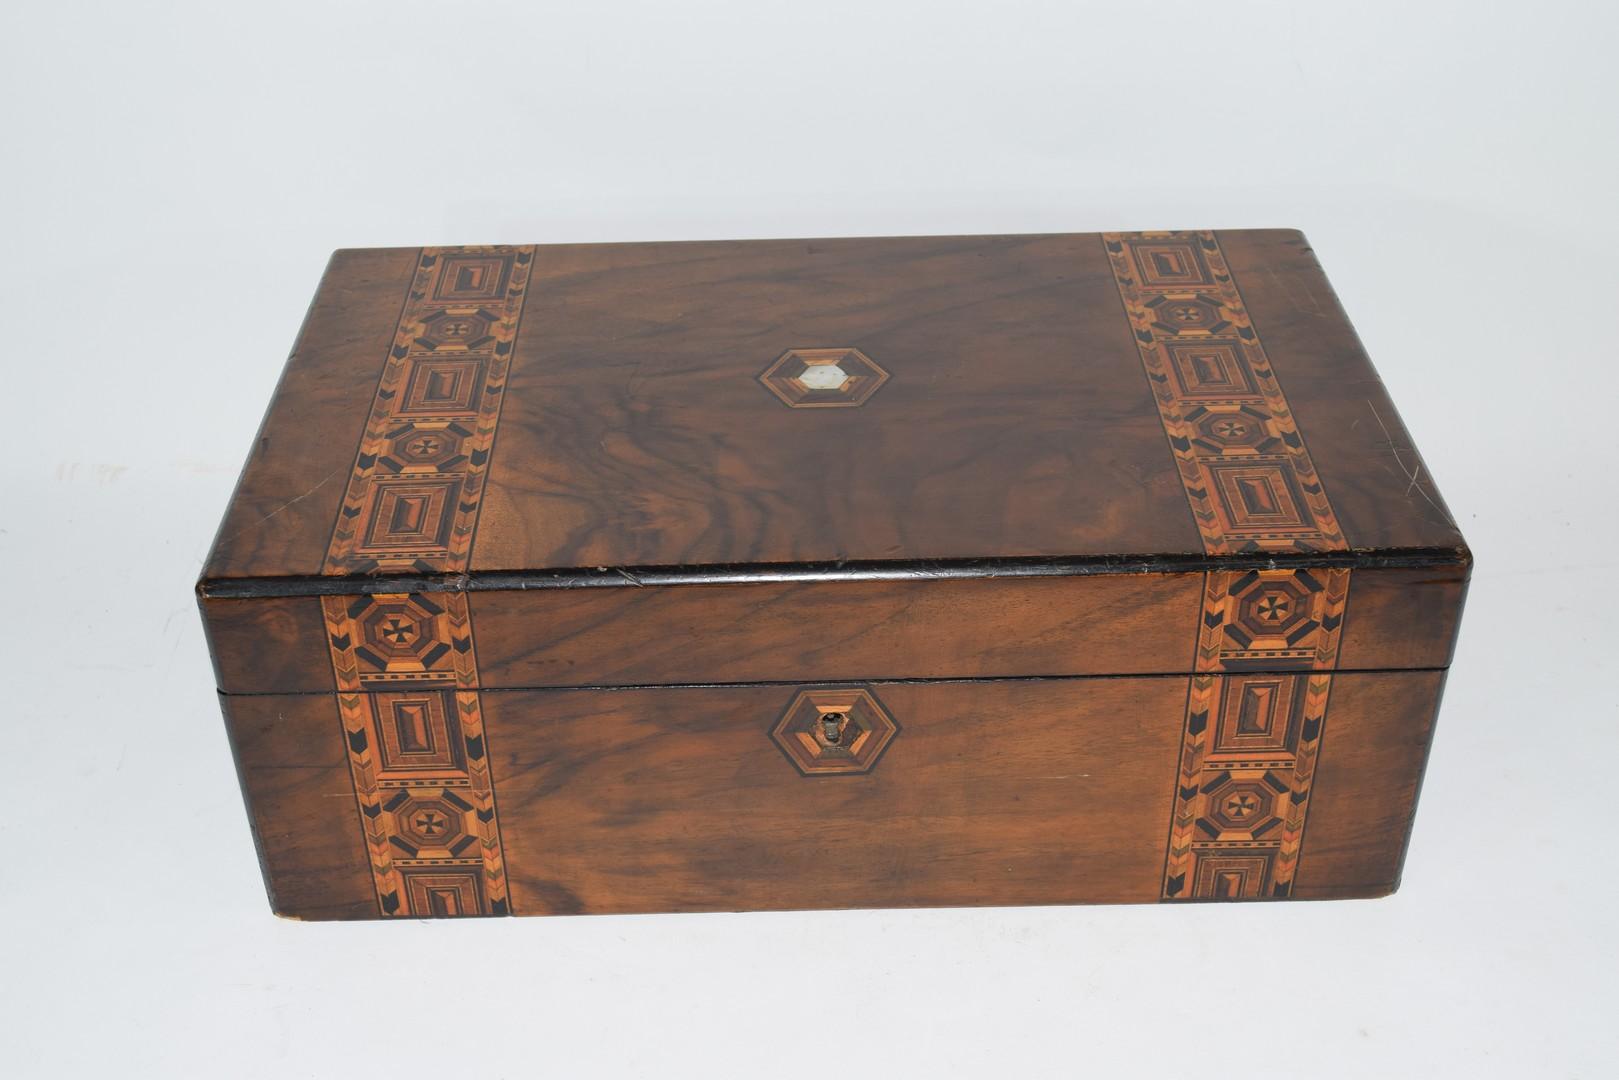 Late 19th century walnut and marquetry inlaid writing box